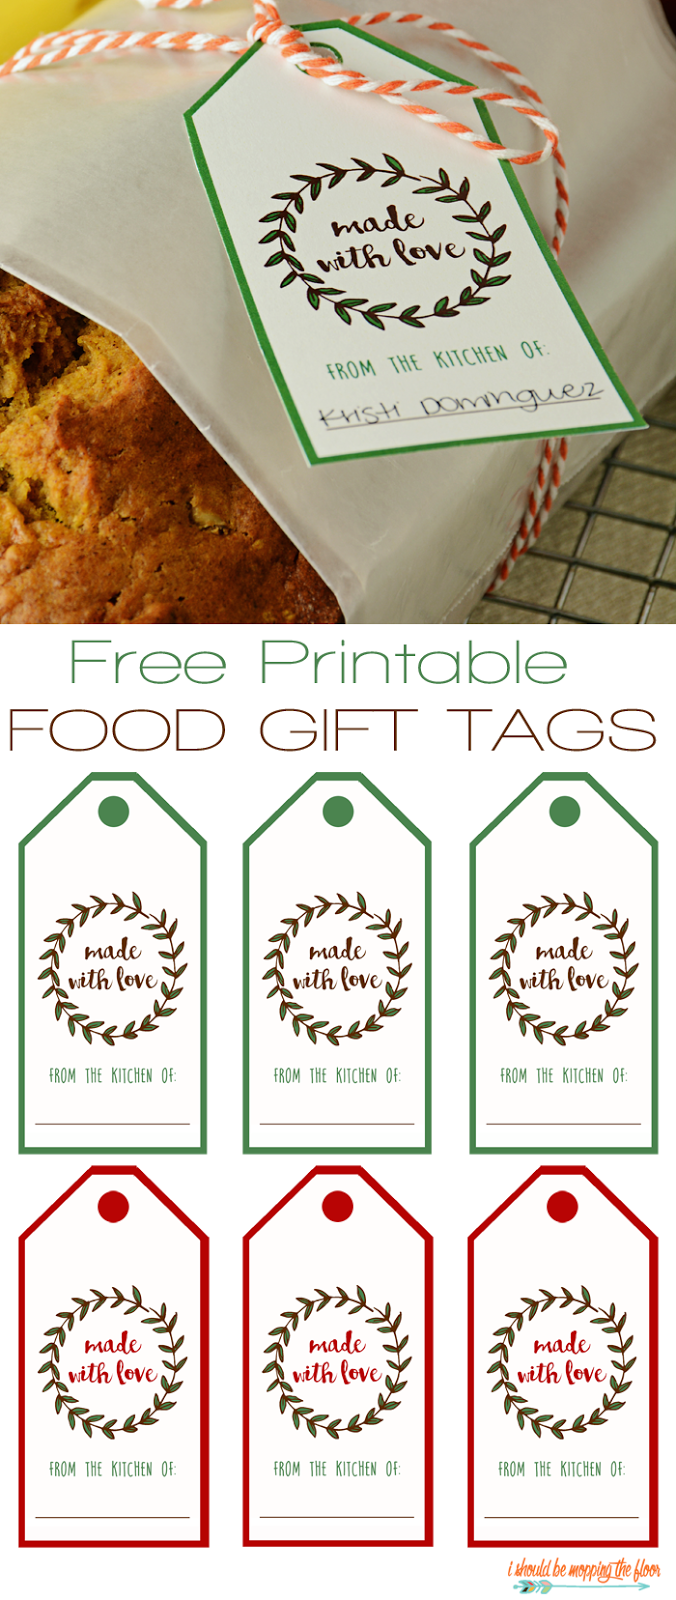 Free Printable Food Gift Tags | Two color options | Just print and attach to a yummy treat.